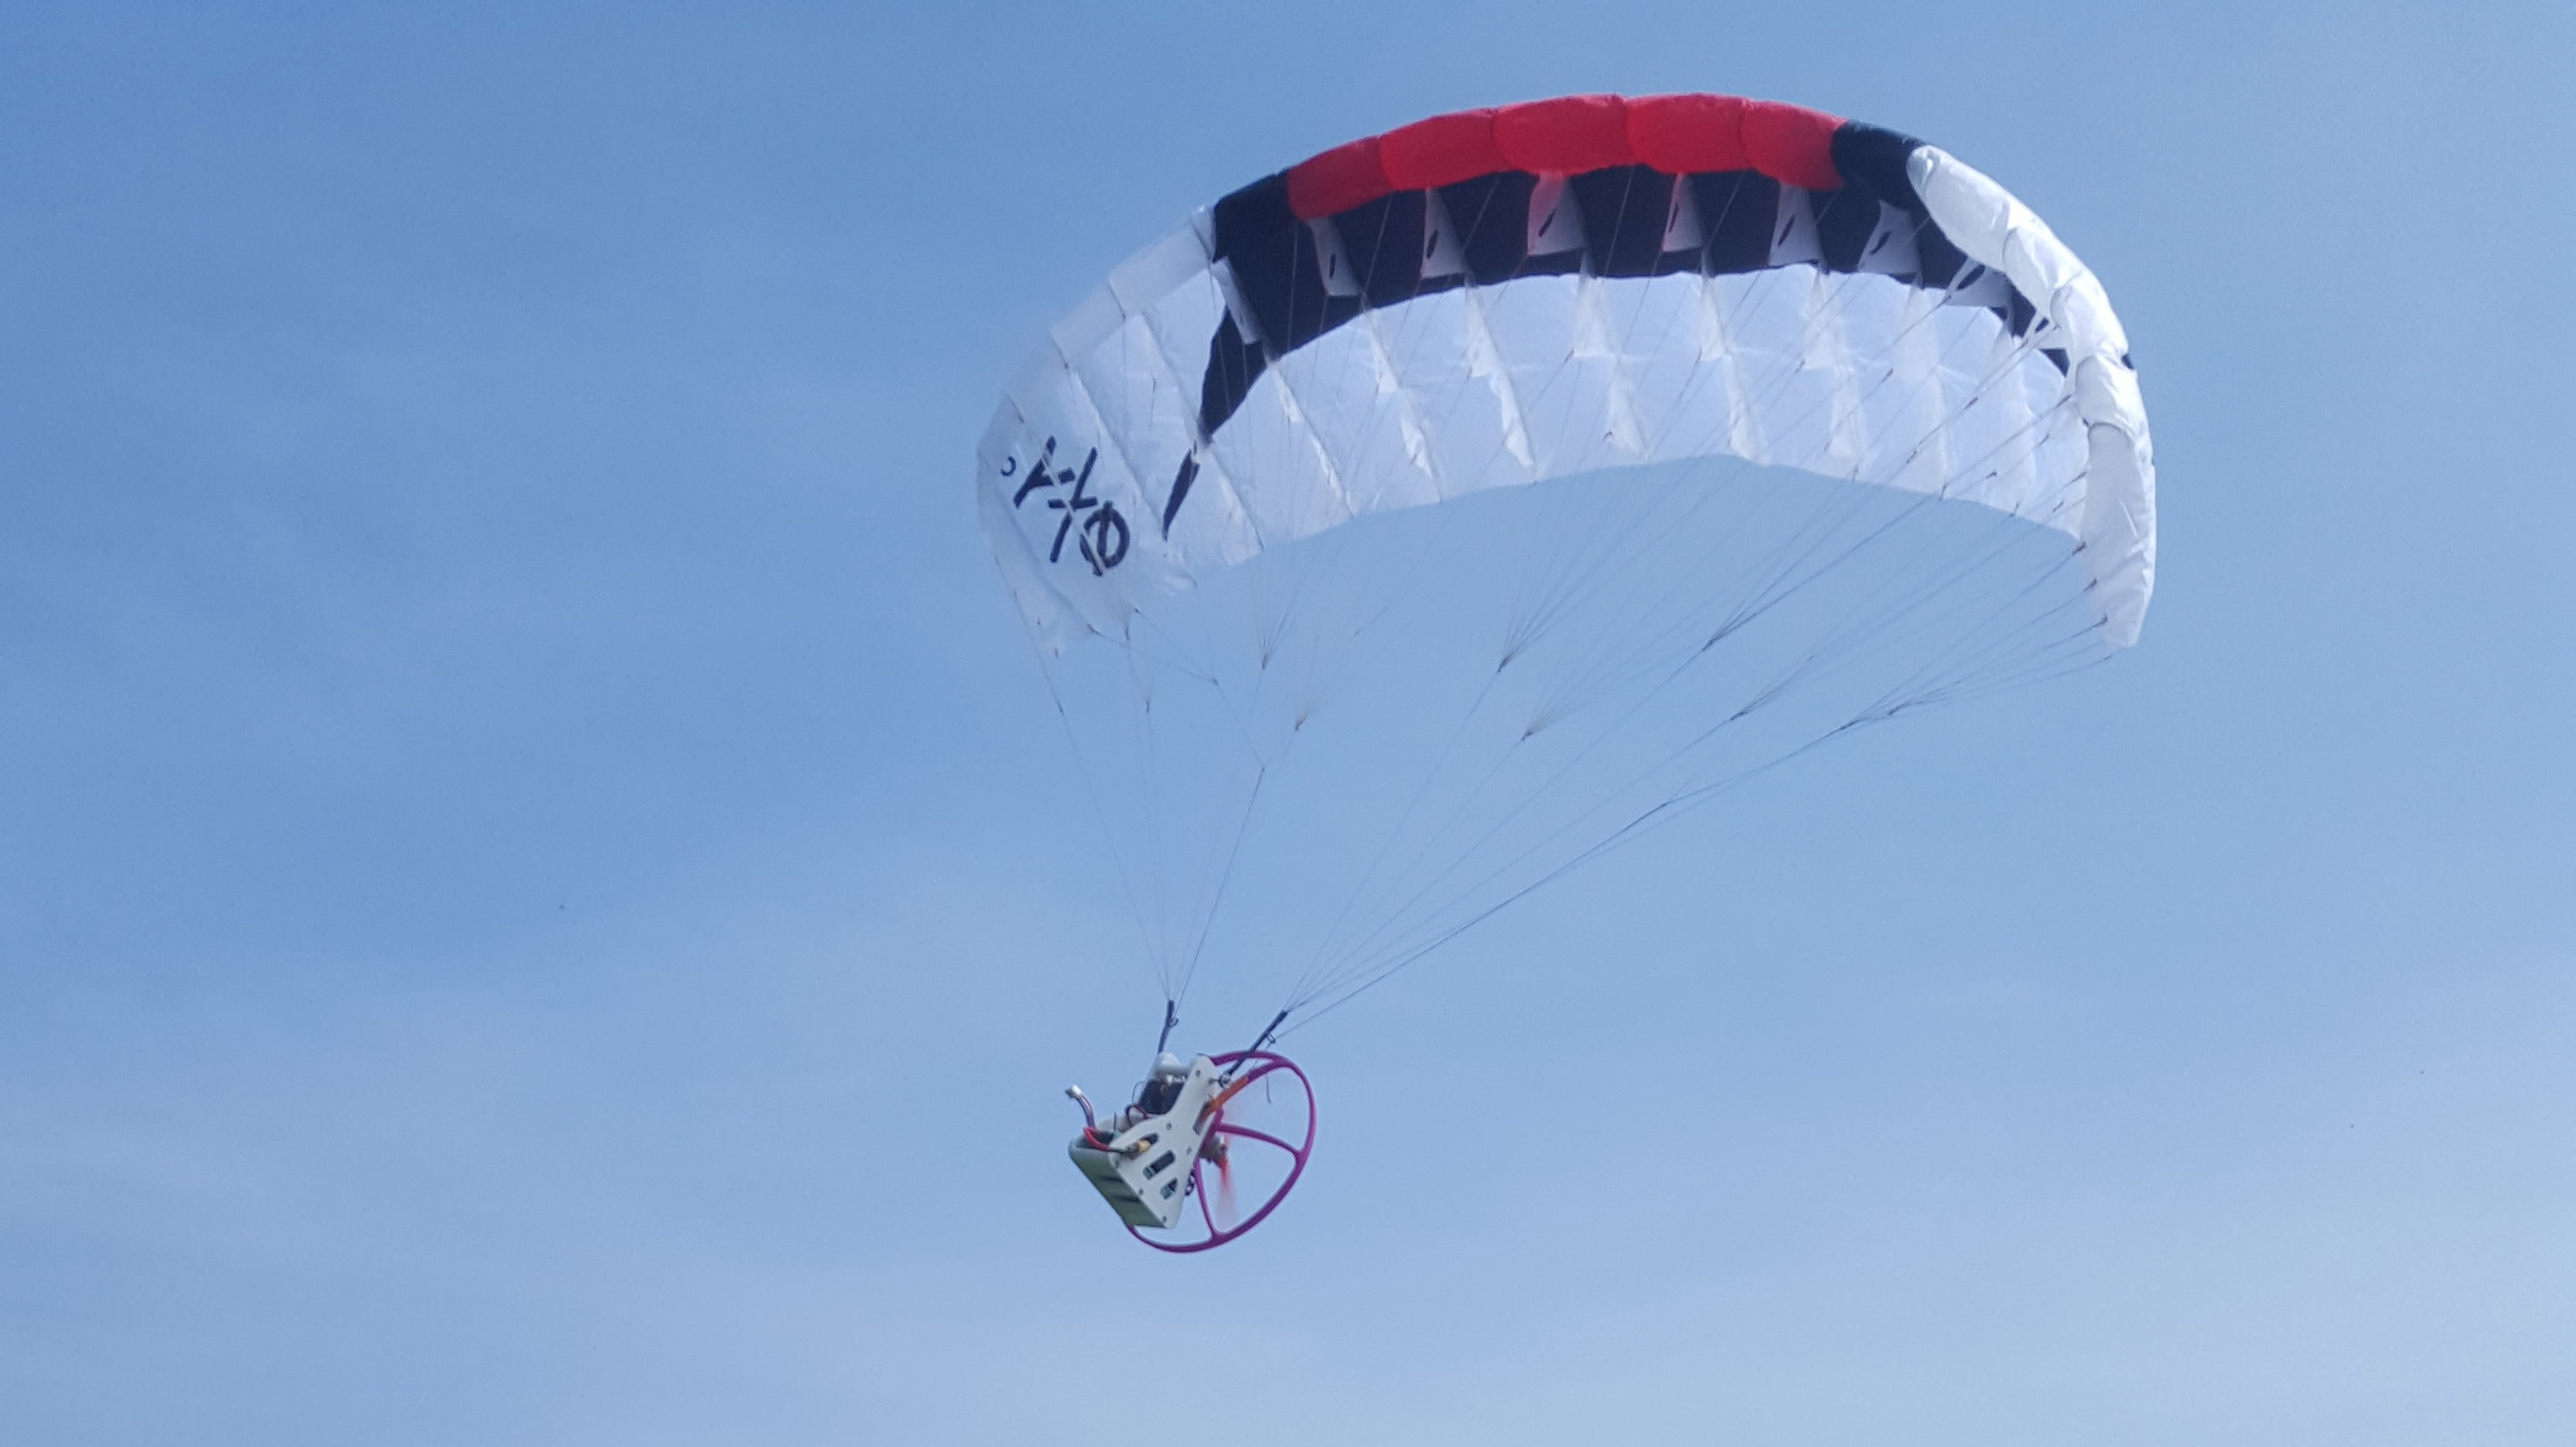 20180421_153134 rogné.jpg Download STL file RC OXY 0.5 Paramotor Boat • Object to 3D print, robotprint3d